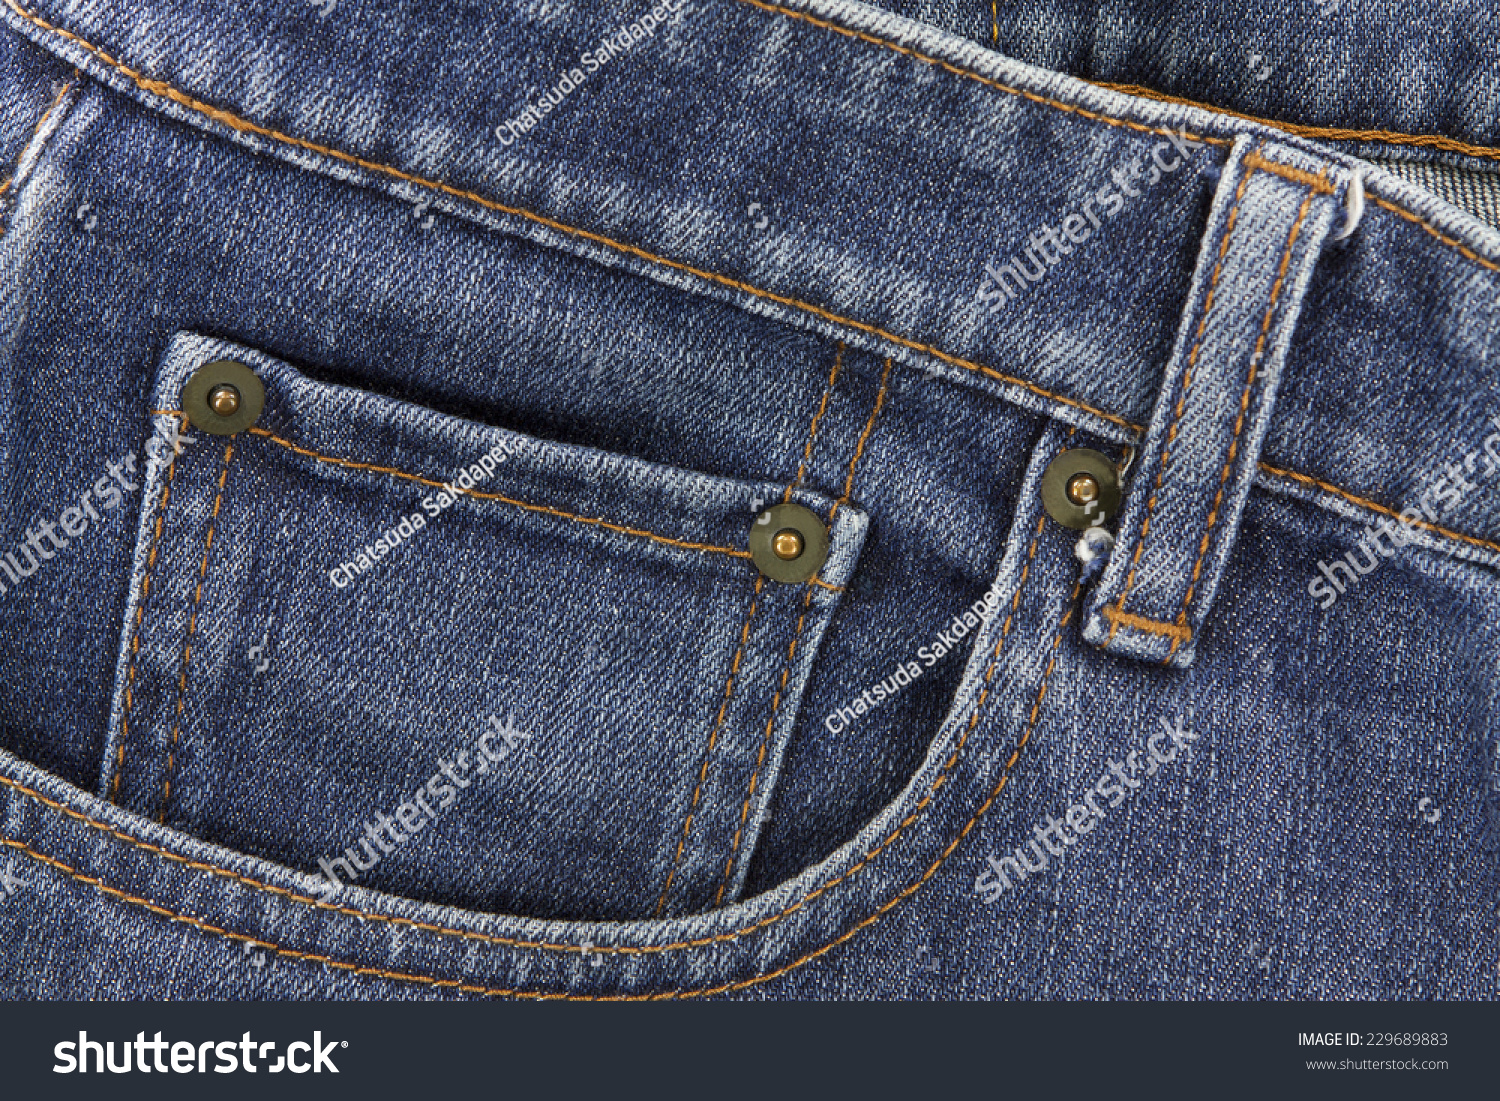 Denim Pocket Closeup Show Texture Background Of Jeans And Pockets Stock Photo 229689883 ...